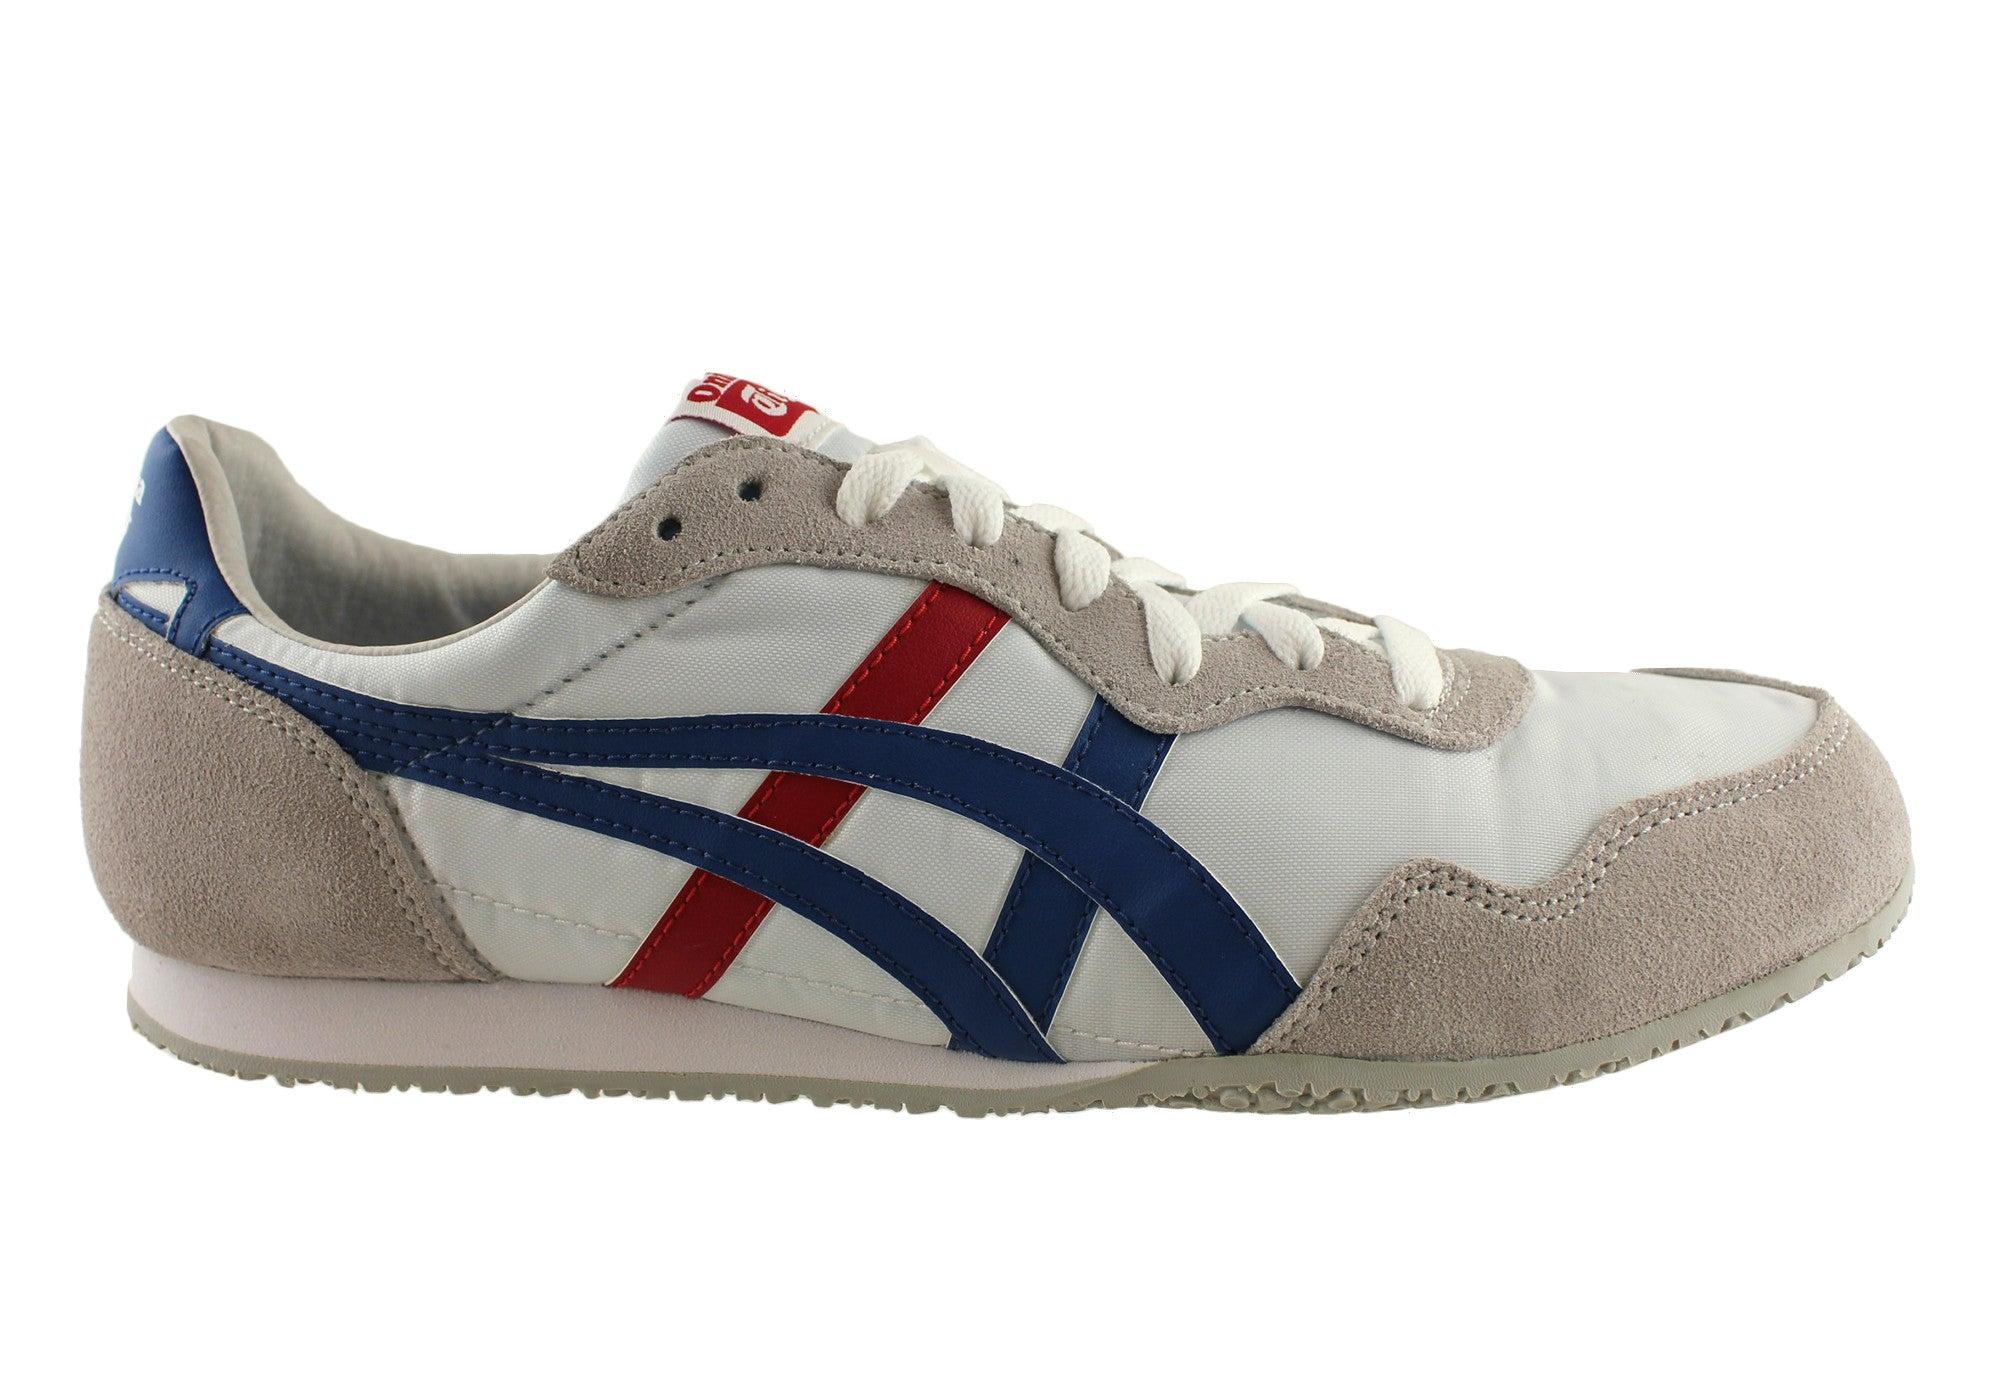 release date 24acf d62a9 Asics Onitsuka Tiger Serrano Mens Shoes | Brand House Direct